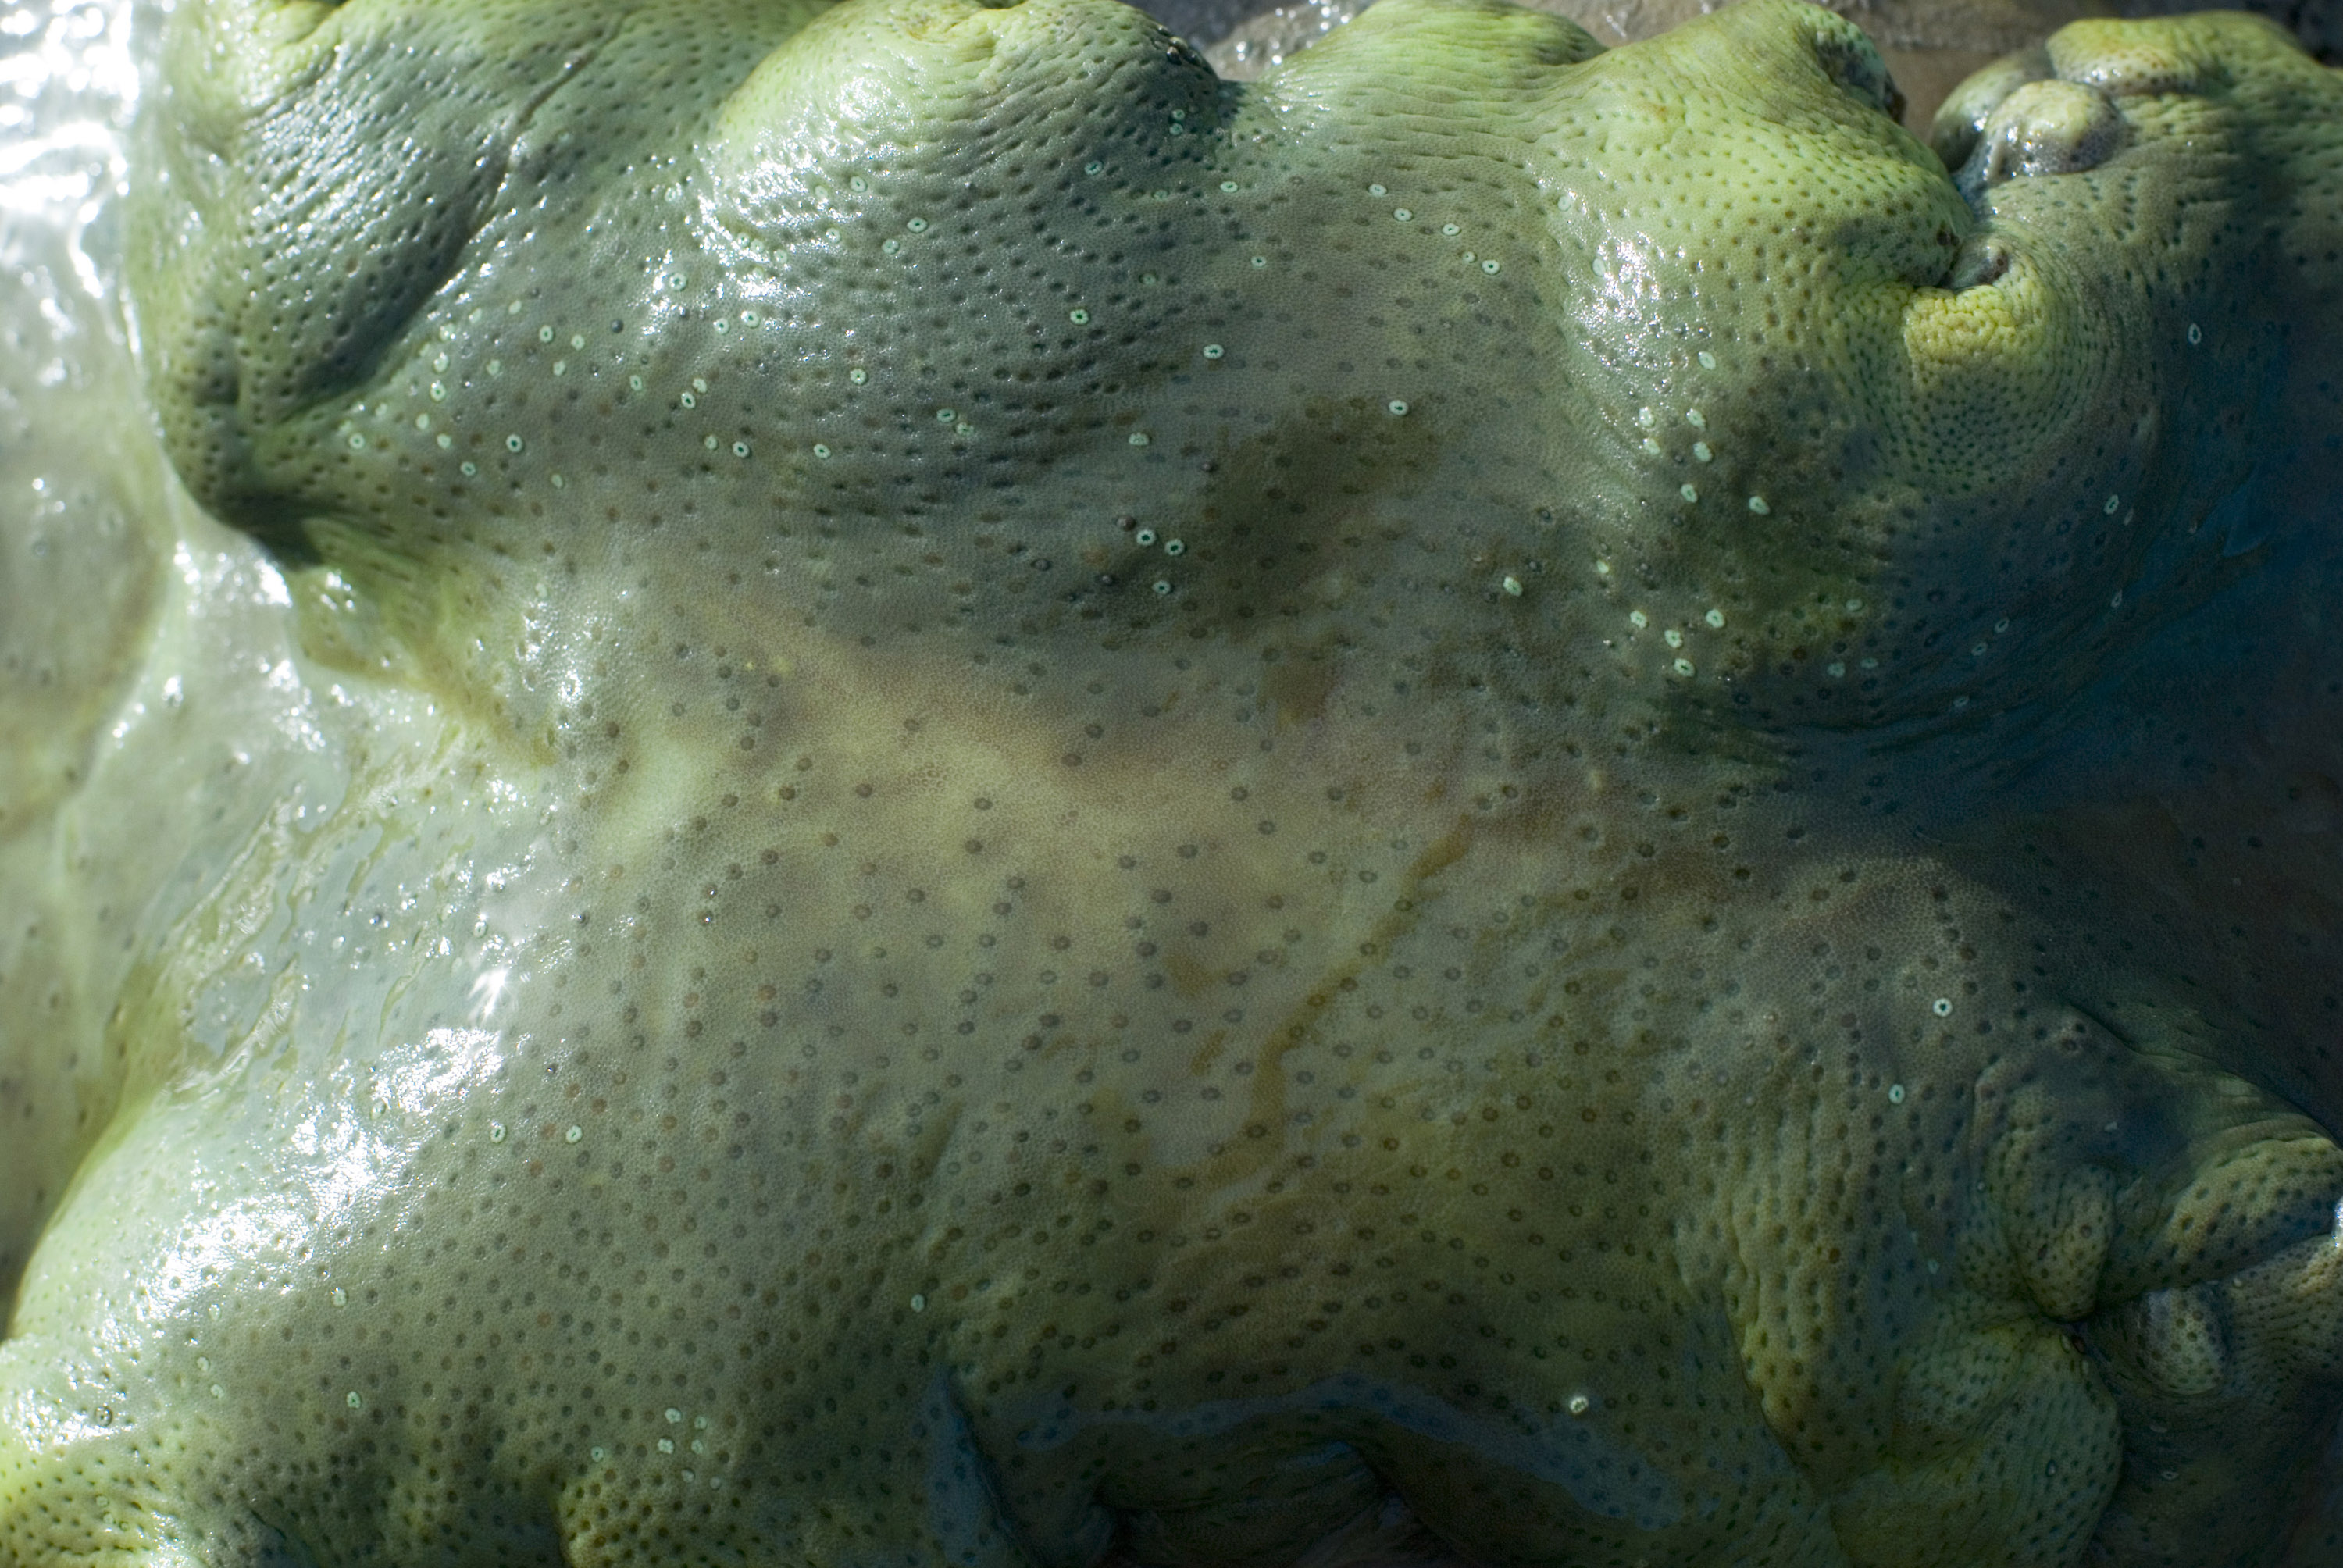 moist green leather coral surface